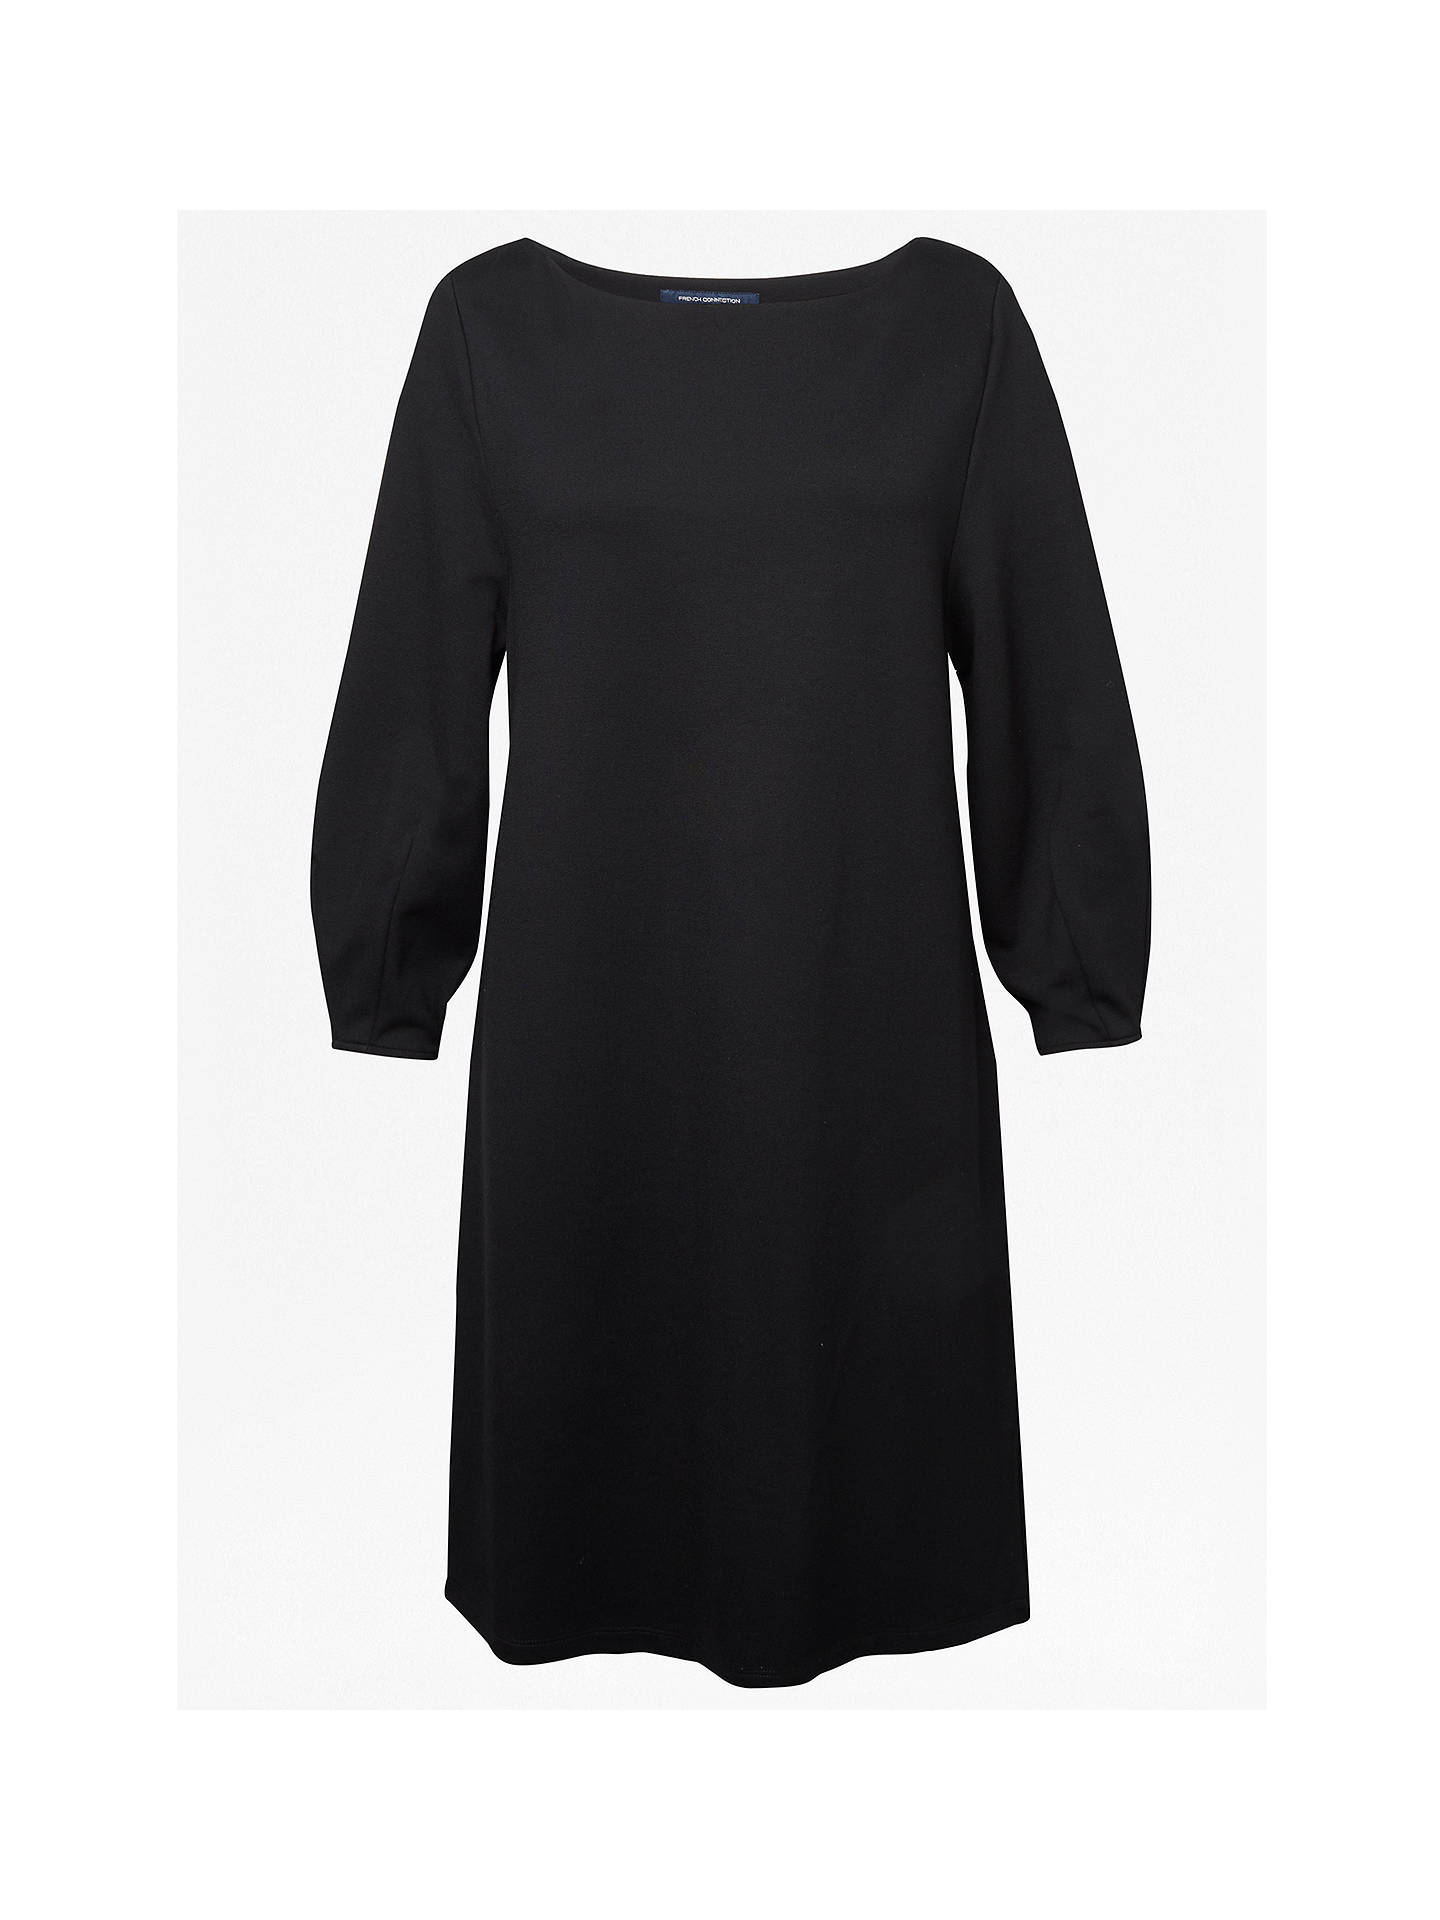 2a8147a331 ... BuyFrench Connection Luella Ponte Jersey Tunic Dress